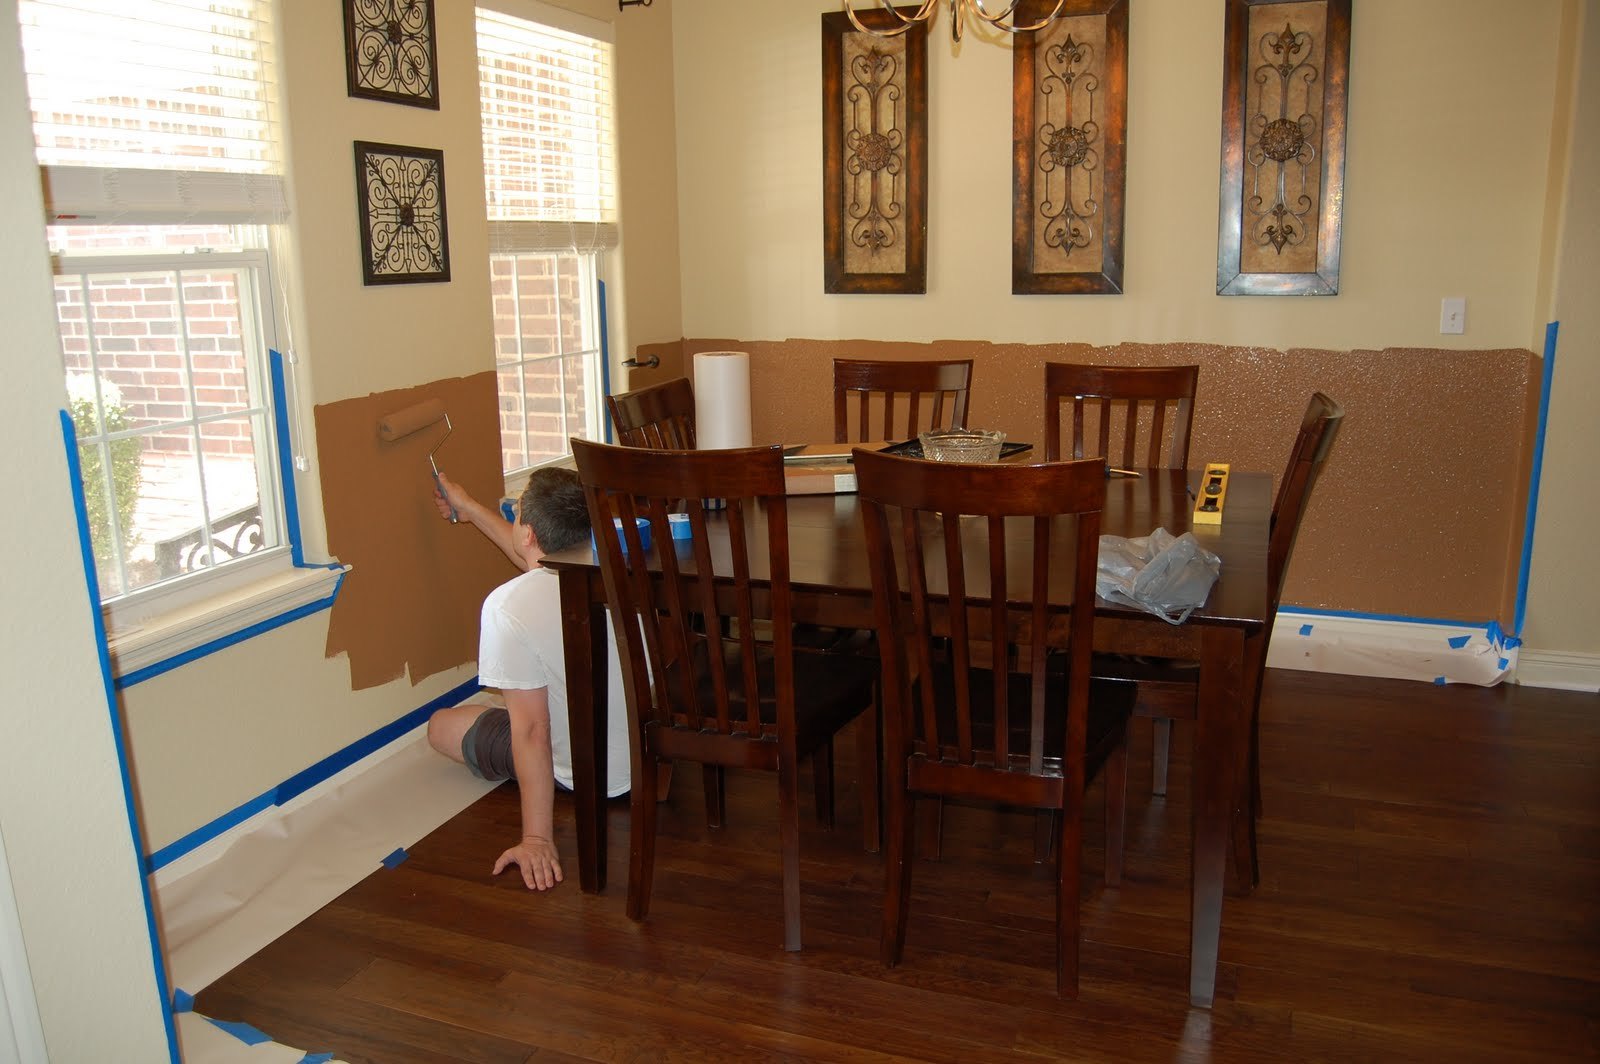 Key Moments: Dining Room Project